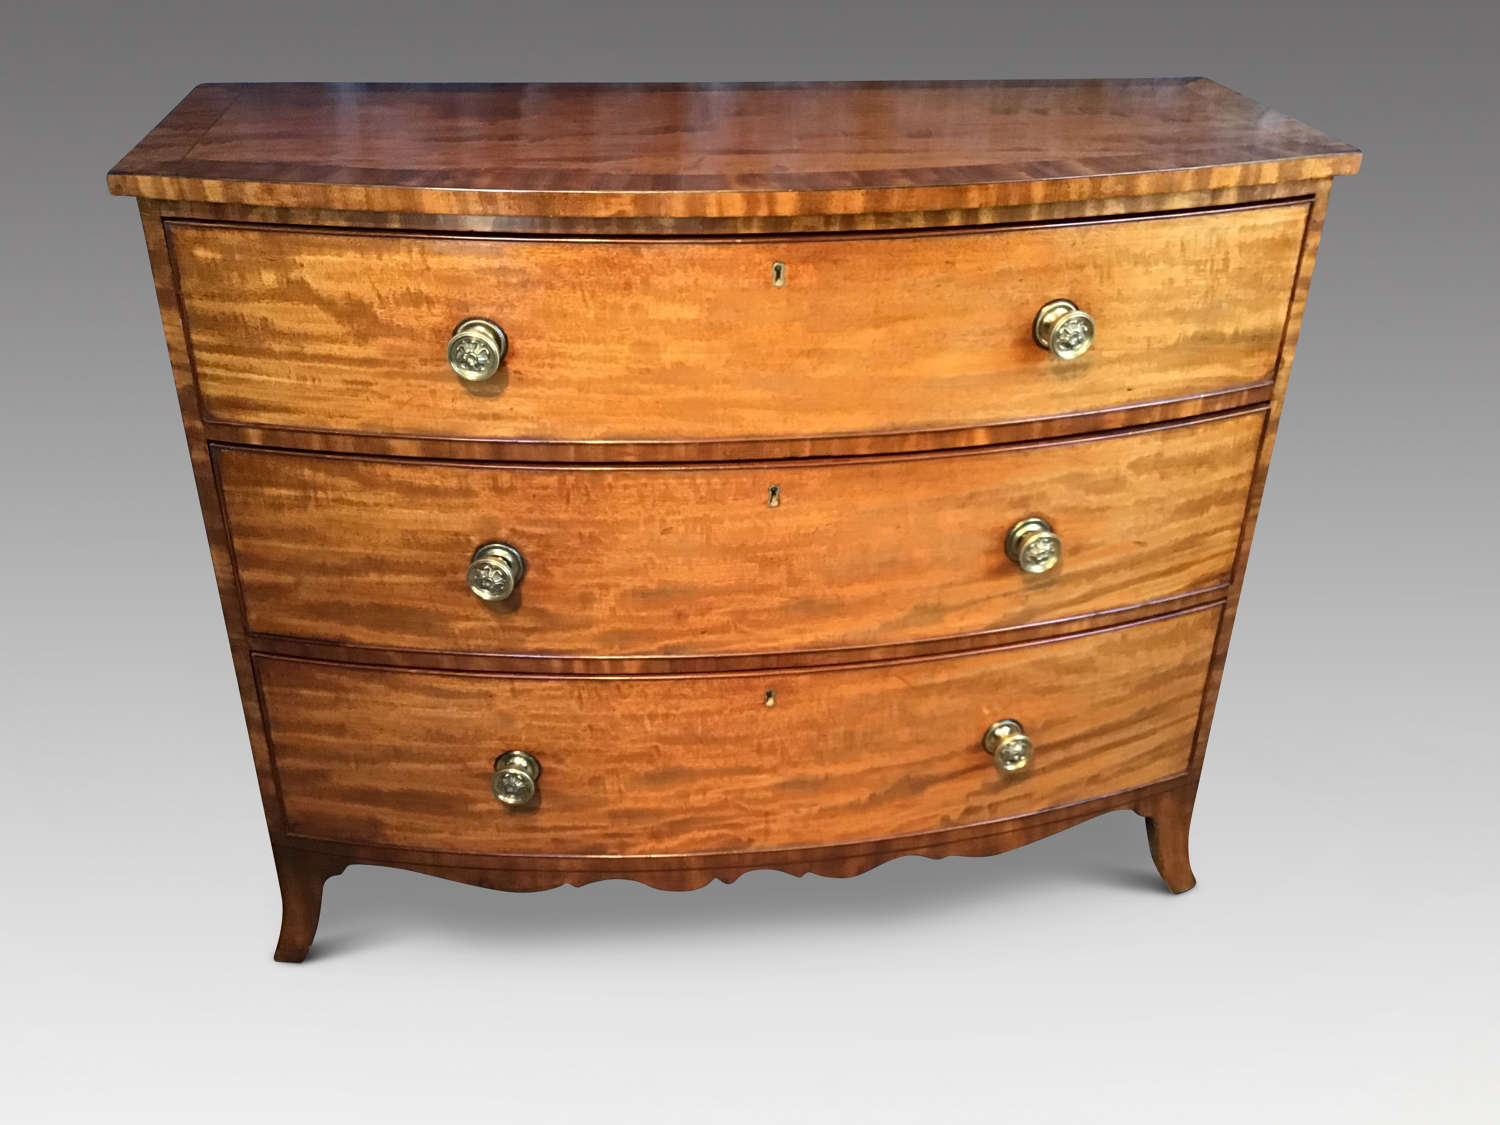 Regency bow front chest of drawers.